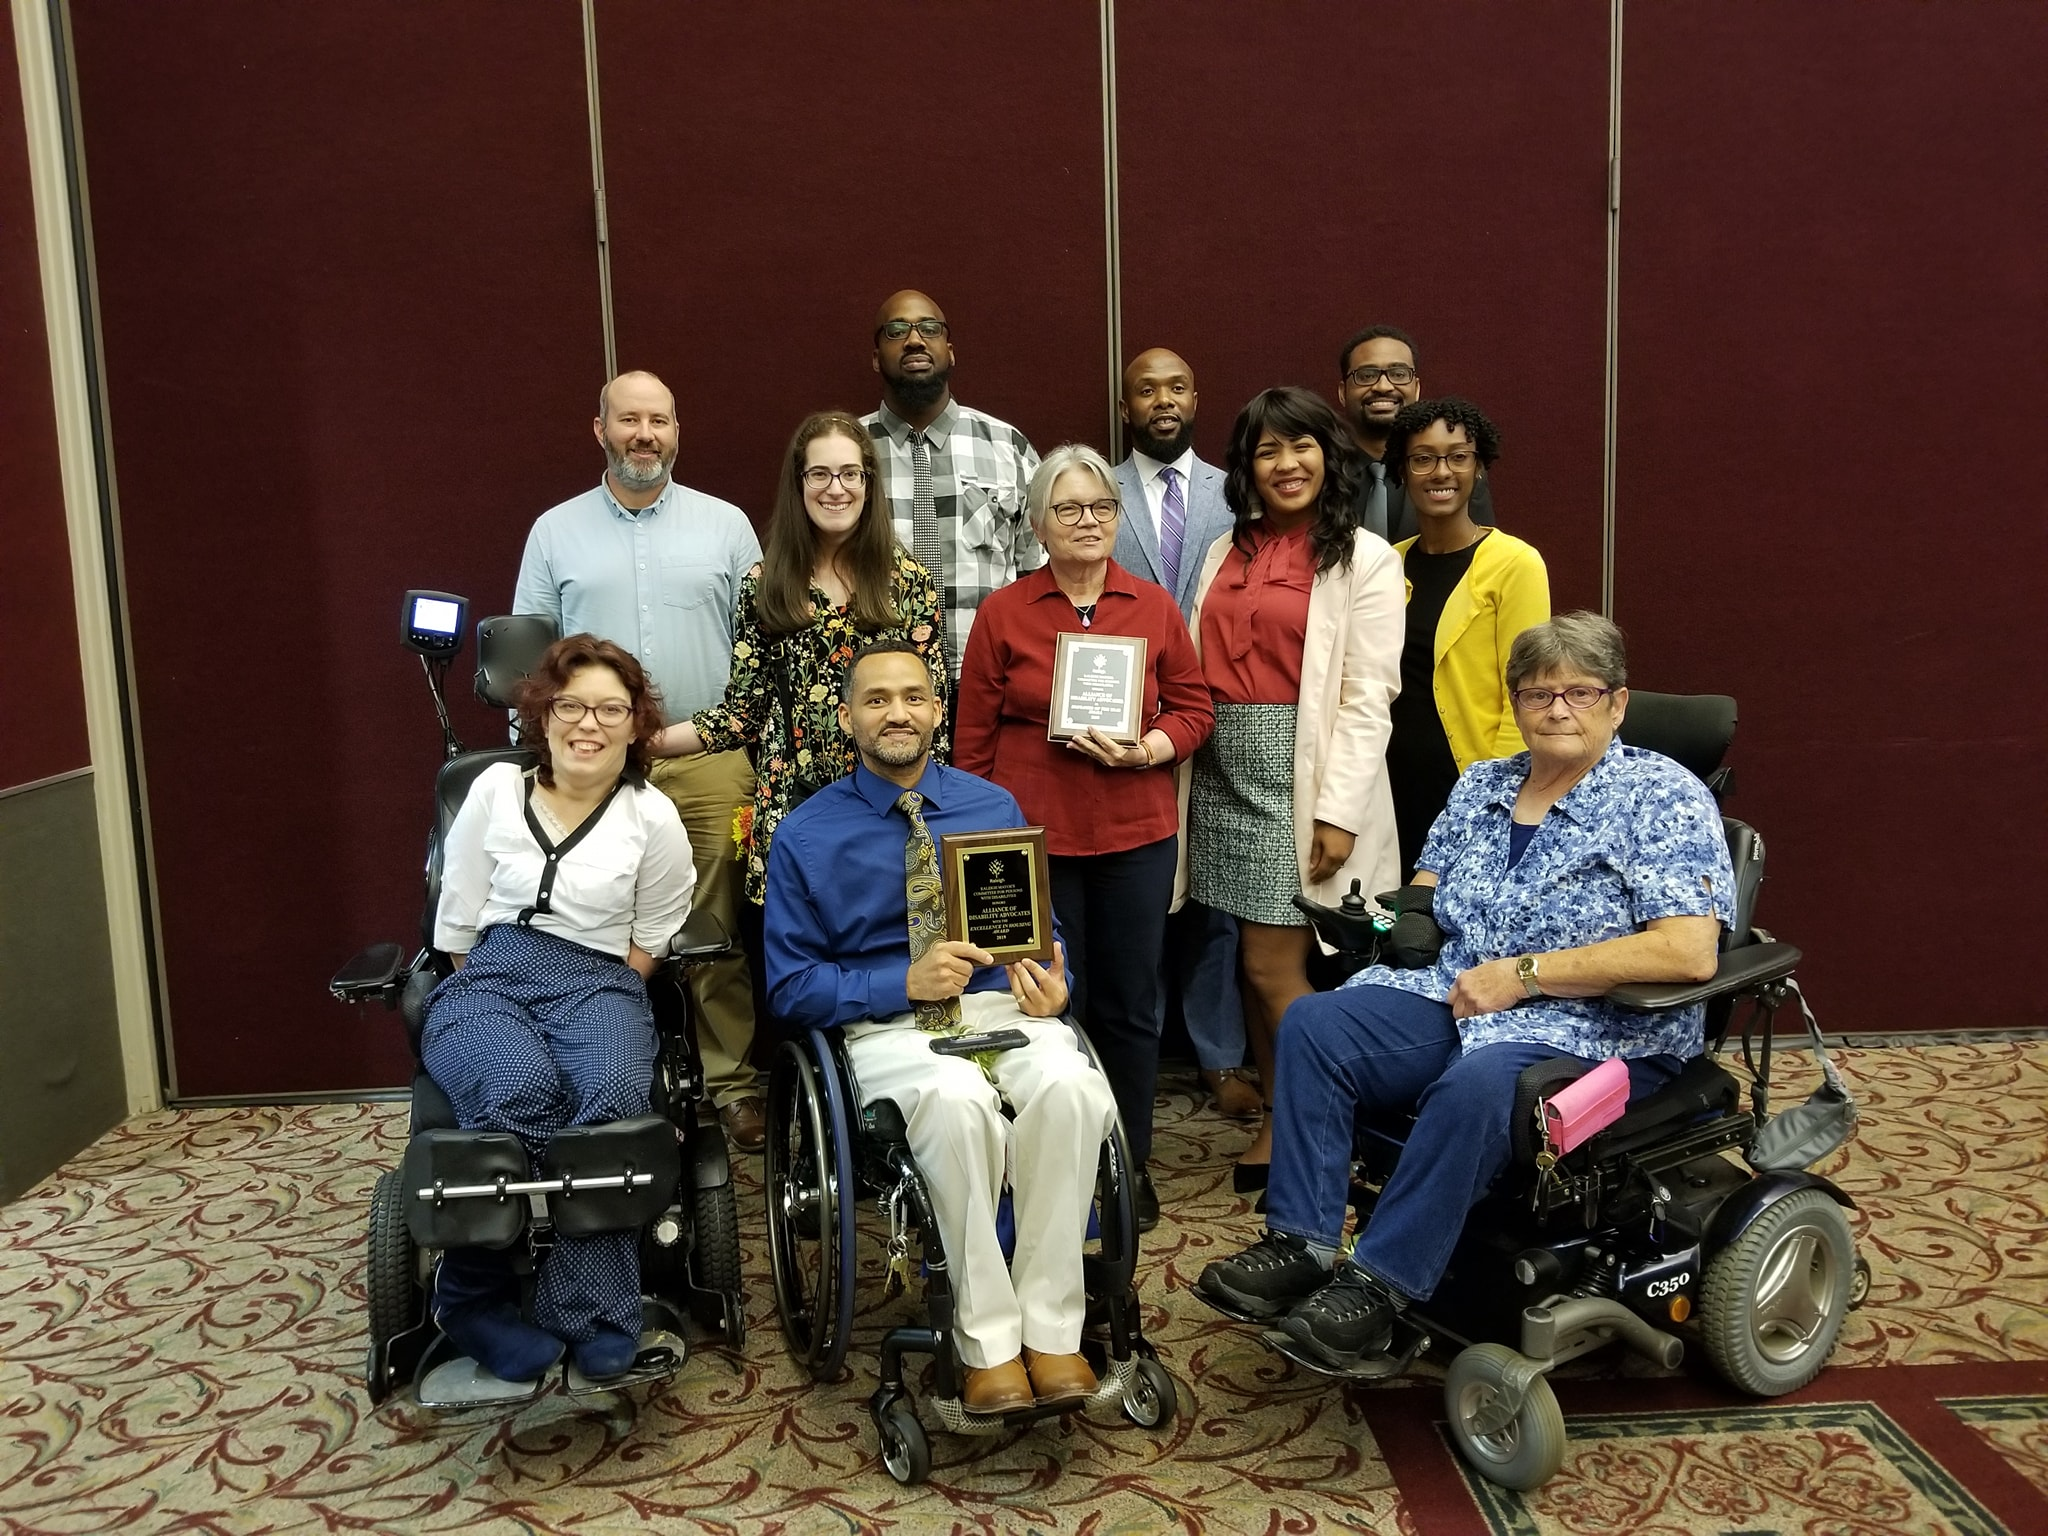 Alliance of Disability Advocates staff group photo at Awards ceremony